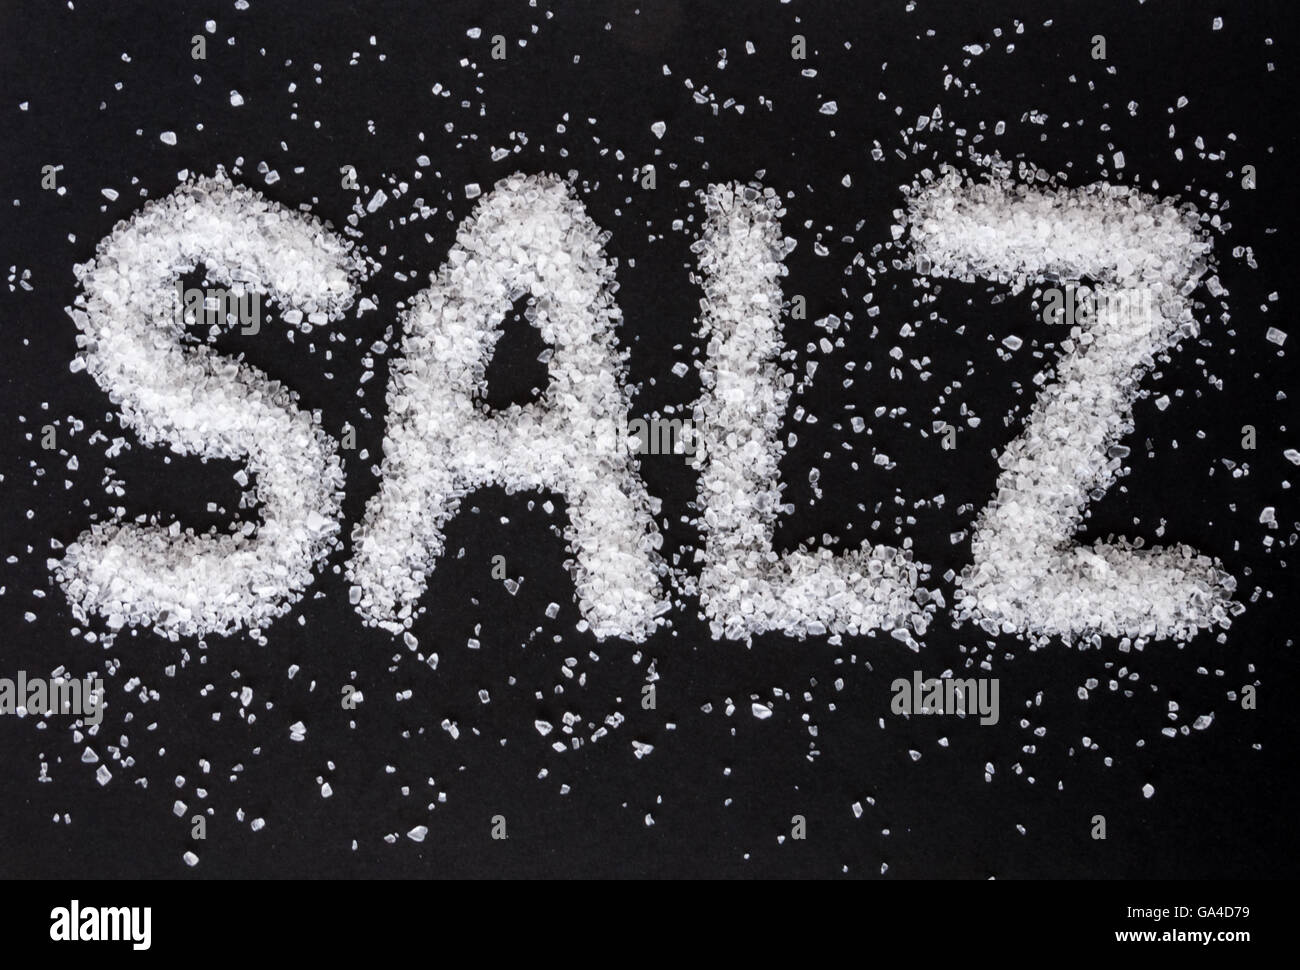 Coarse-grained sea salt with the German word SALZ on black background - Stock Image